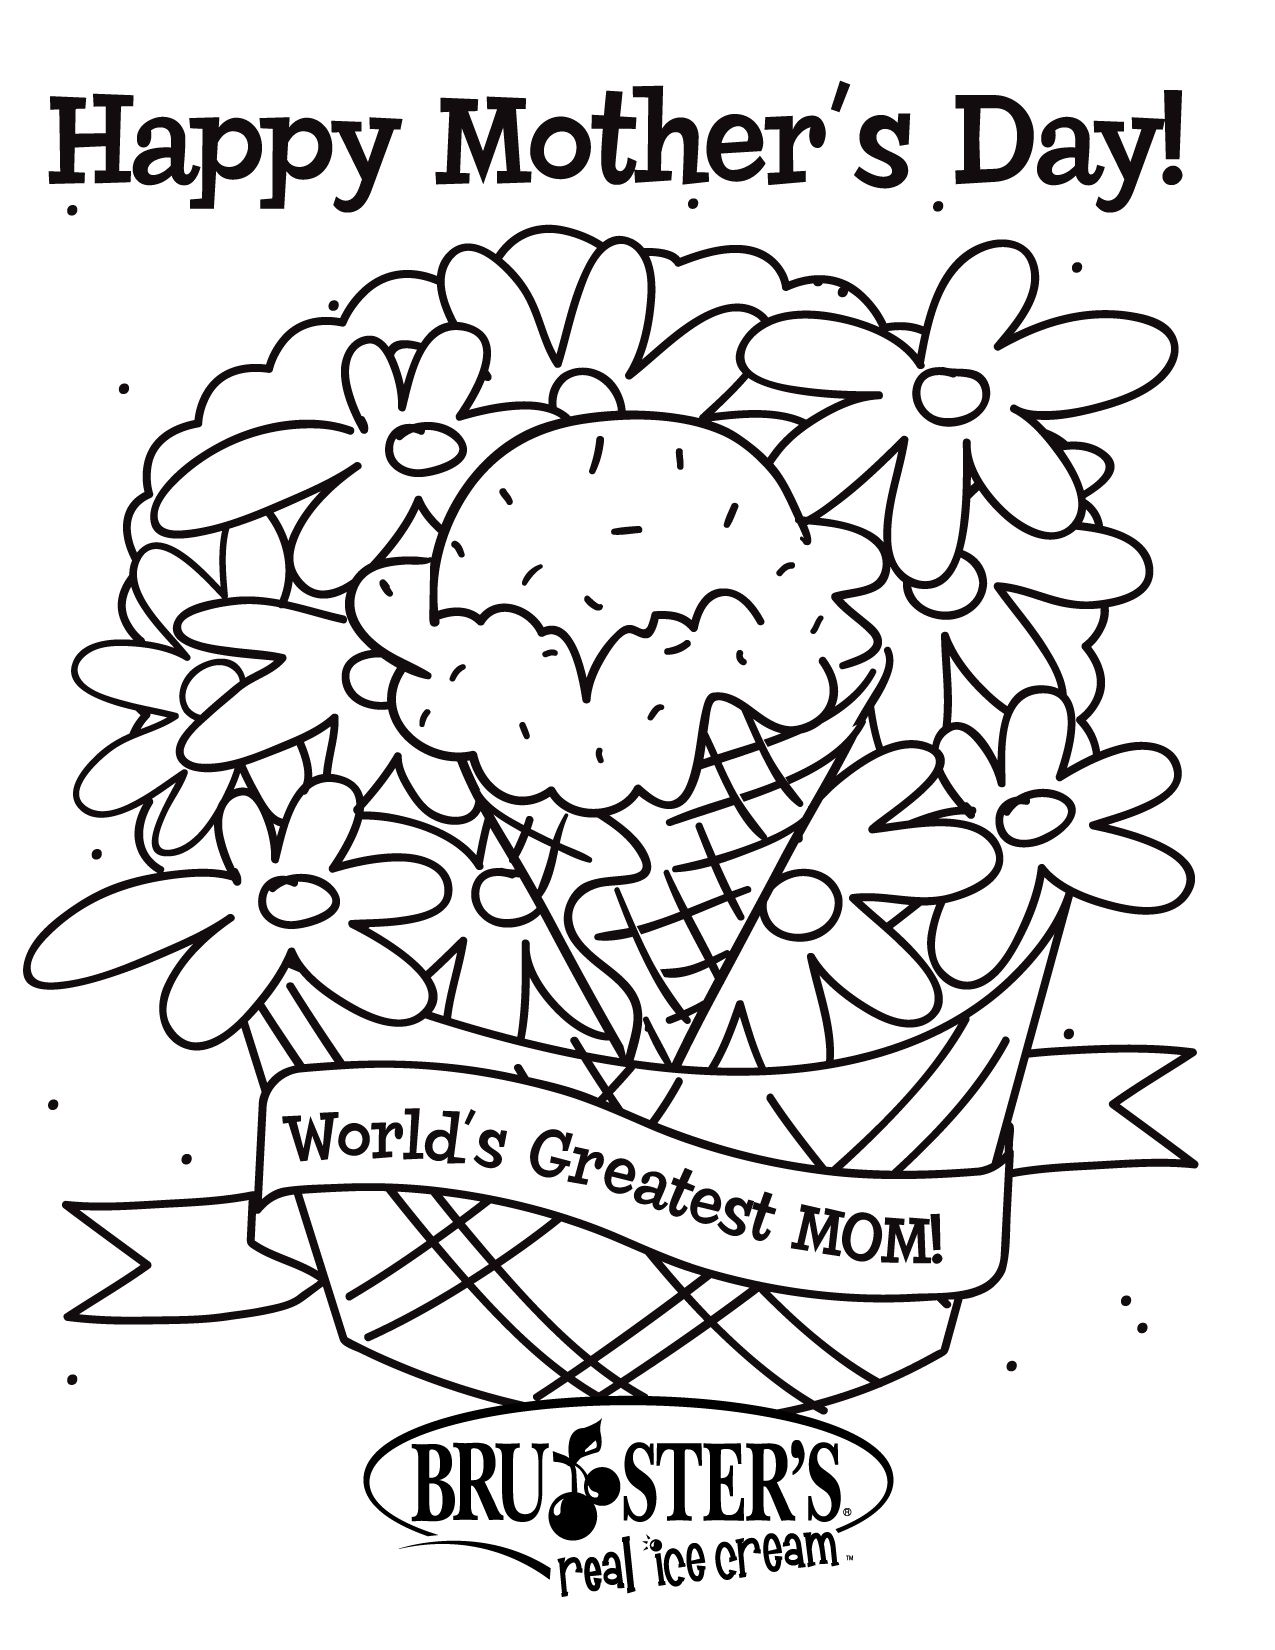 Mothers Day Coloring Pages - Free Printable Mothers Day Coloring Pages for Kids